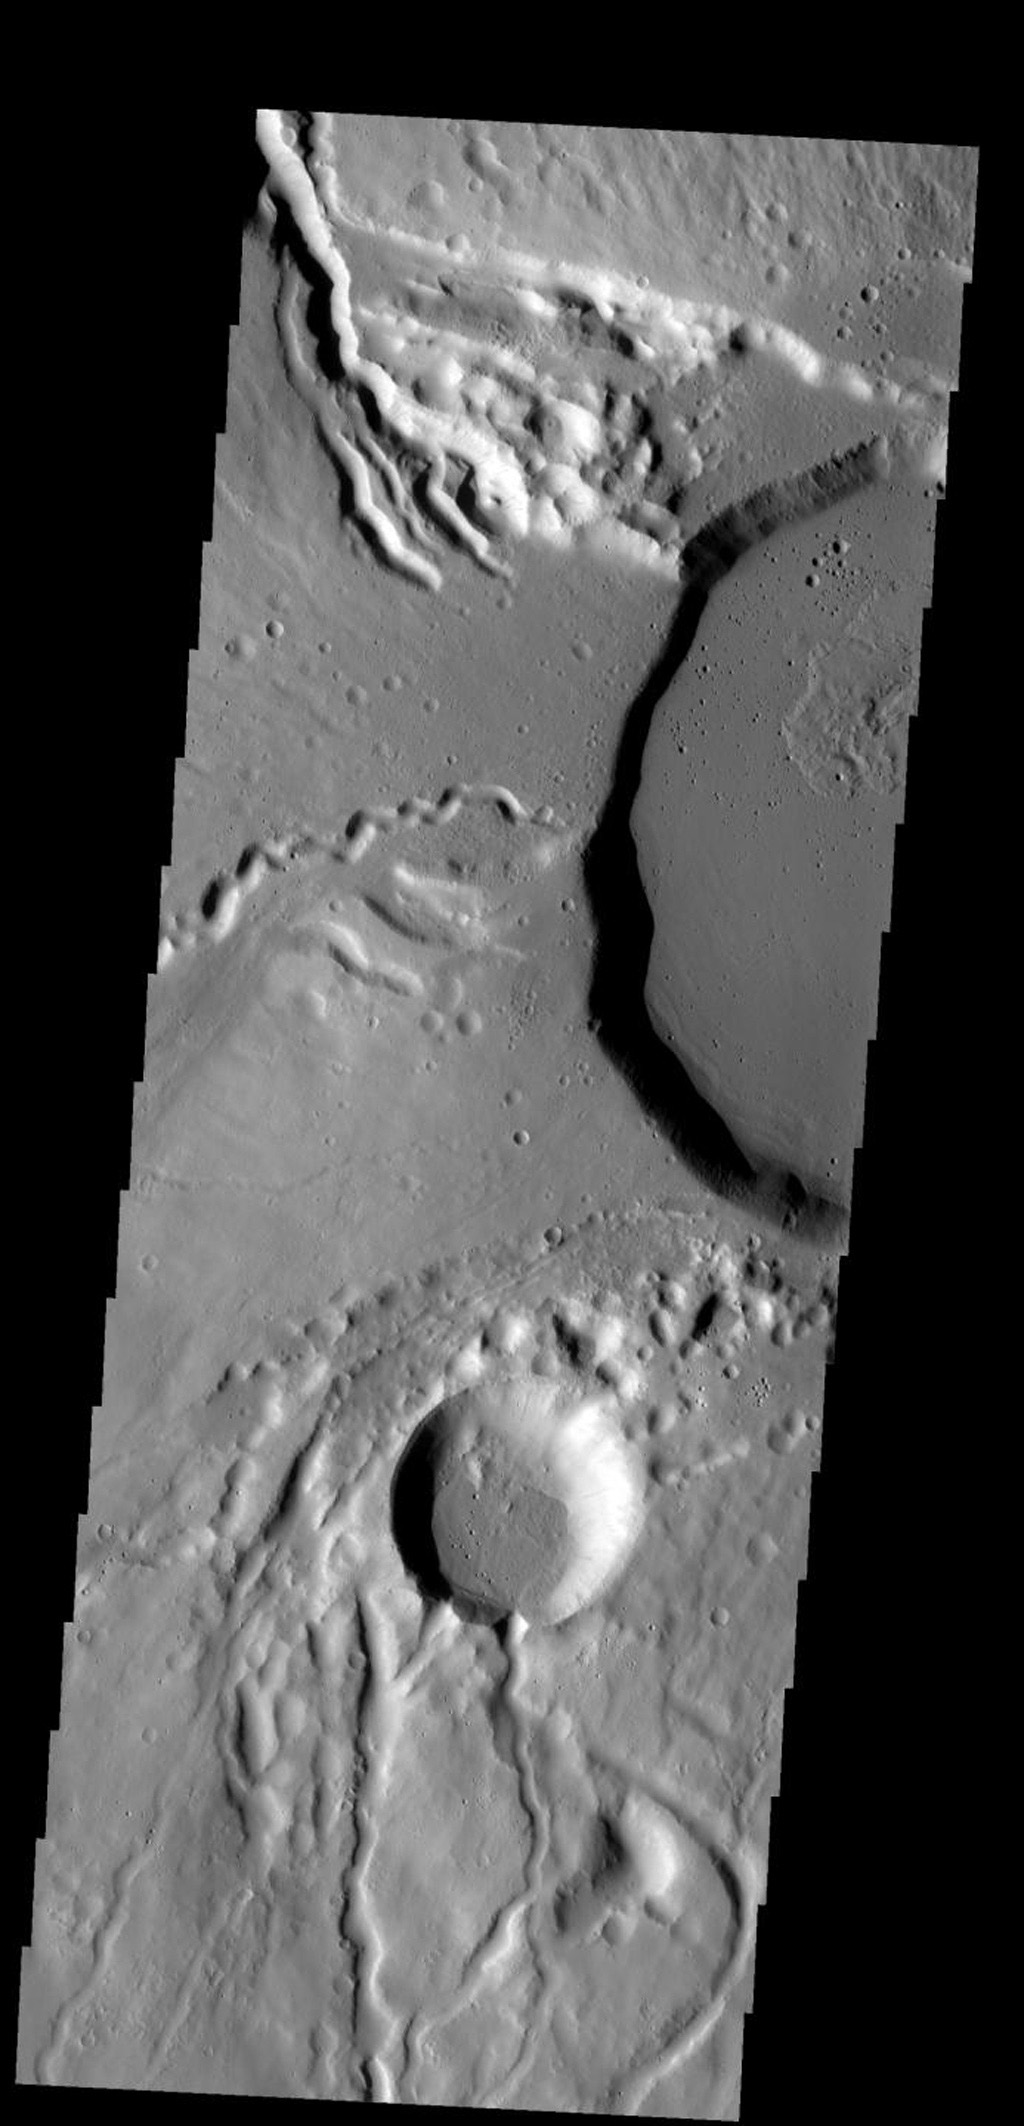 This image shows part of the summit caldera of Ceraunius Tholus on Mars. Channels are common on the flanks of this volcano on Mars, taken by NASA's Mars 2001 Odyssey spacecraft.